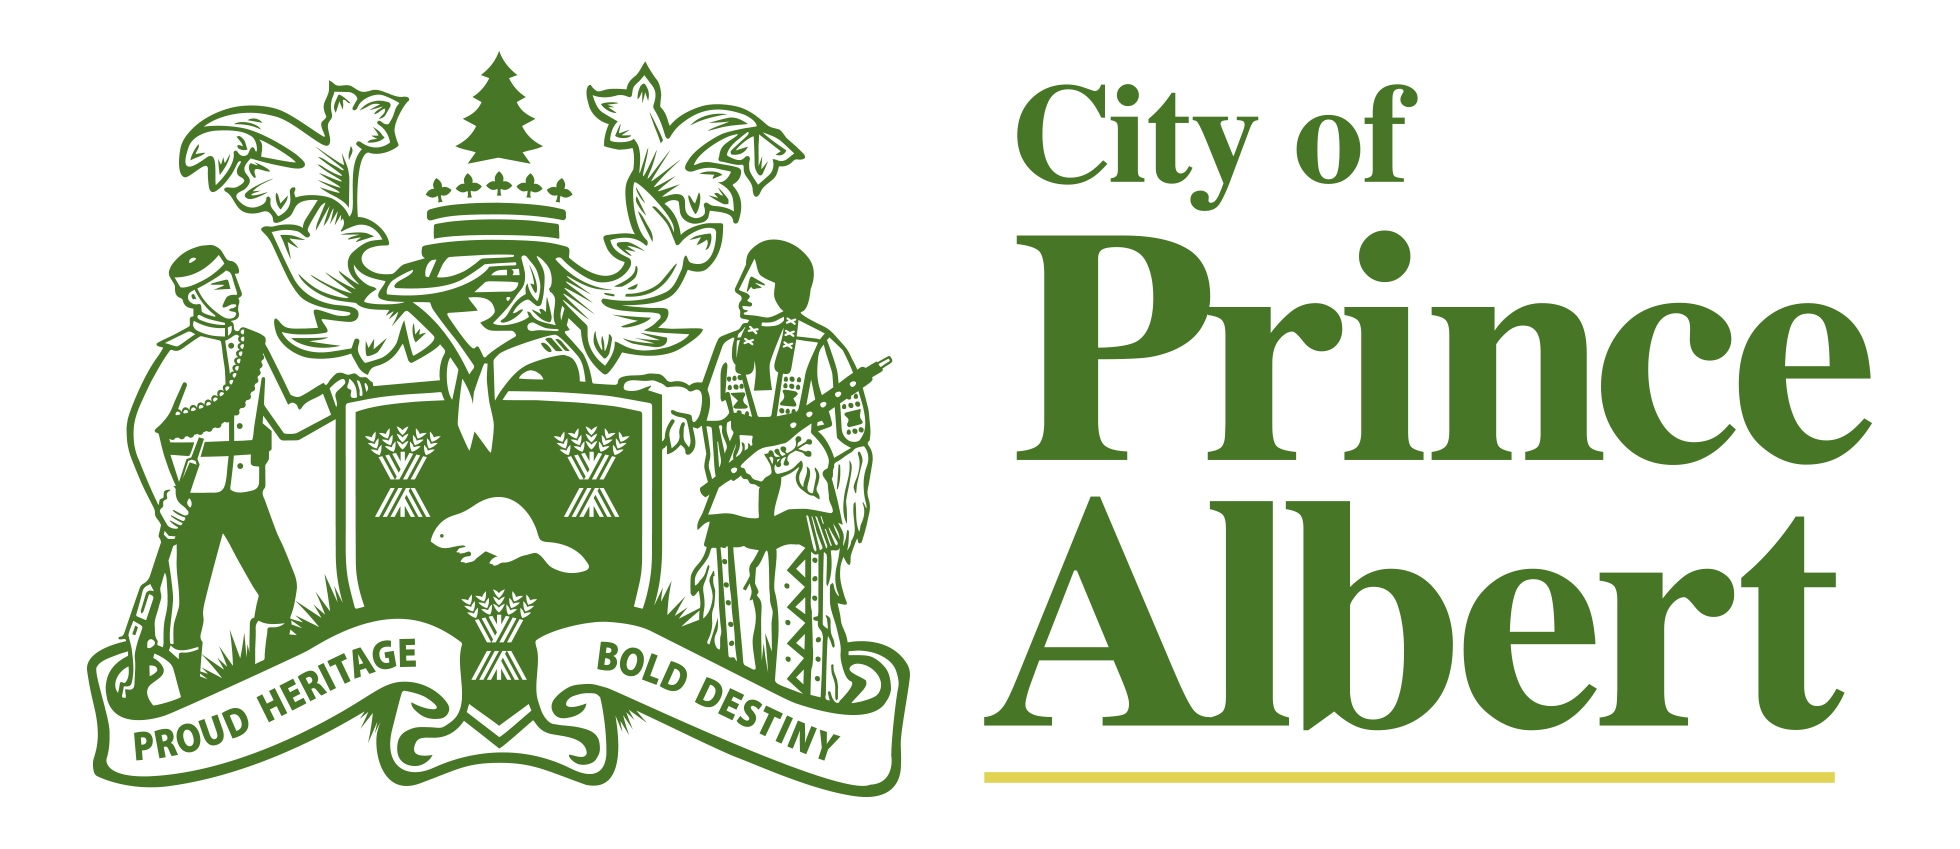 Proposed 2019 budget released by city of Prince Albert